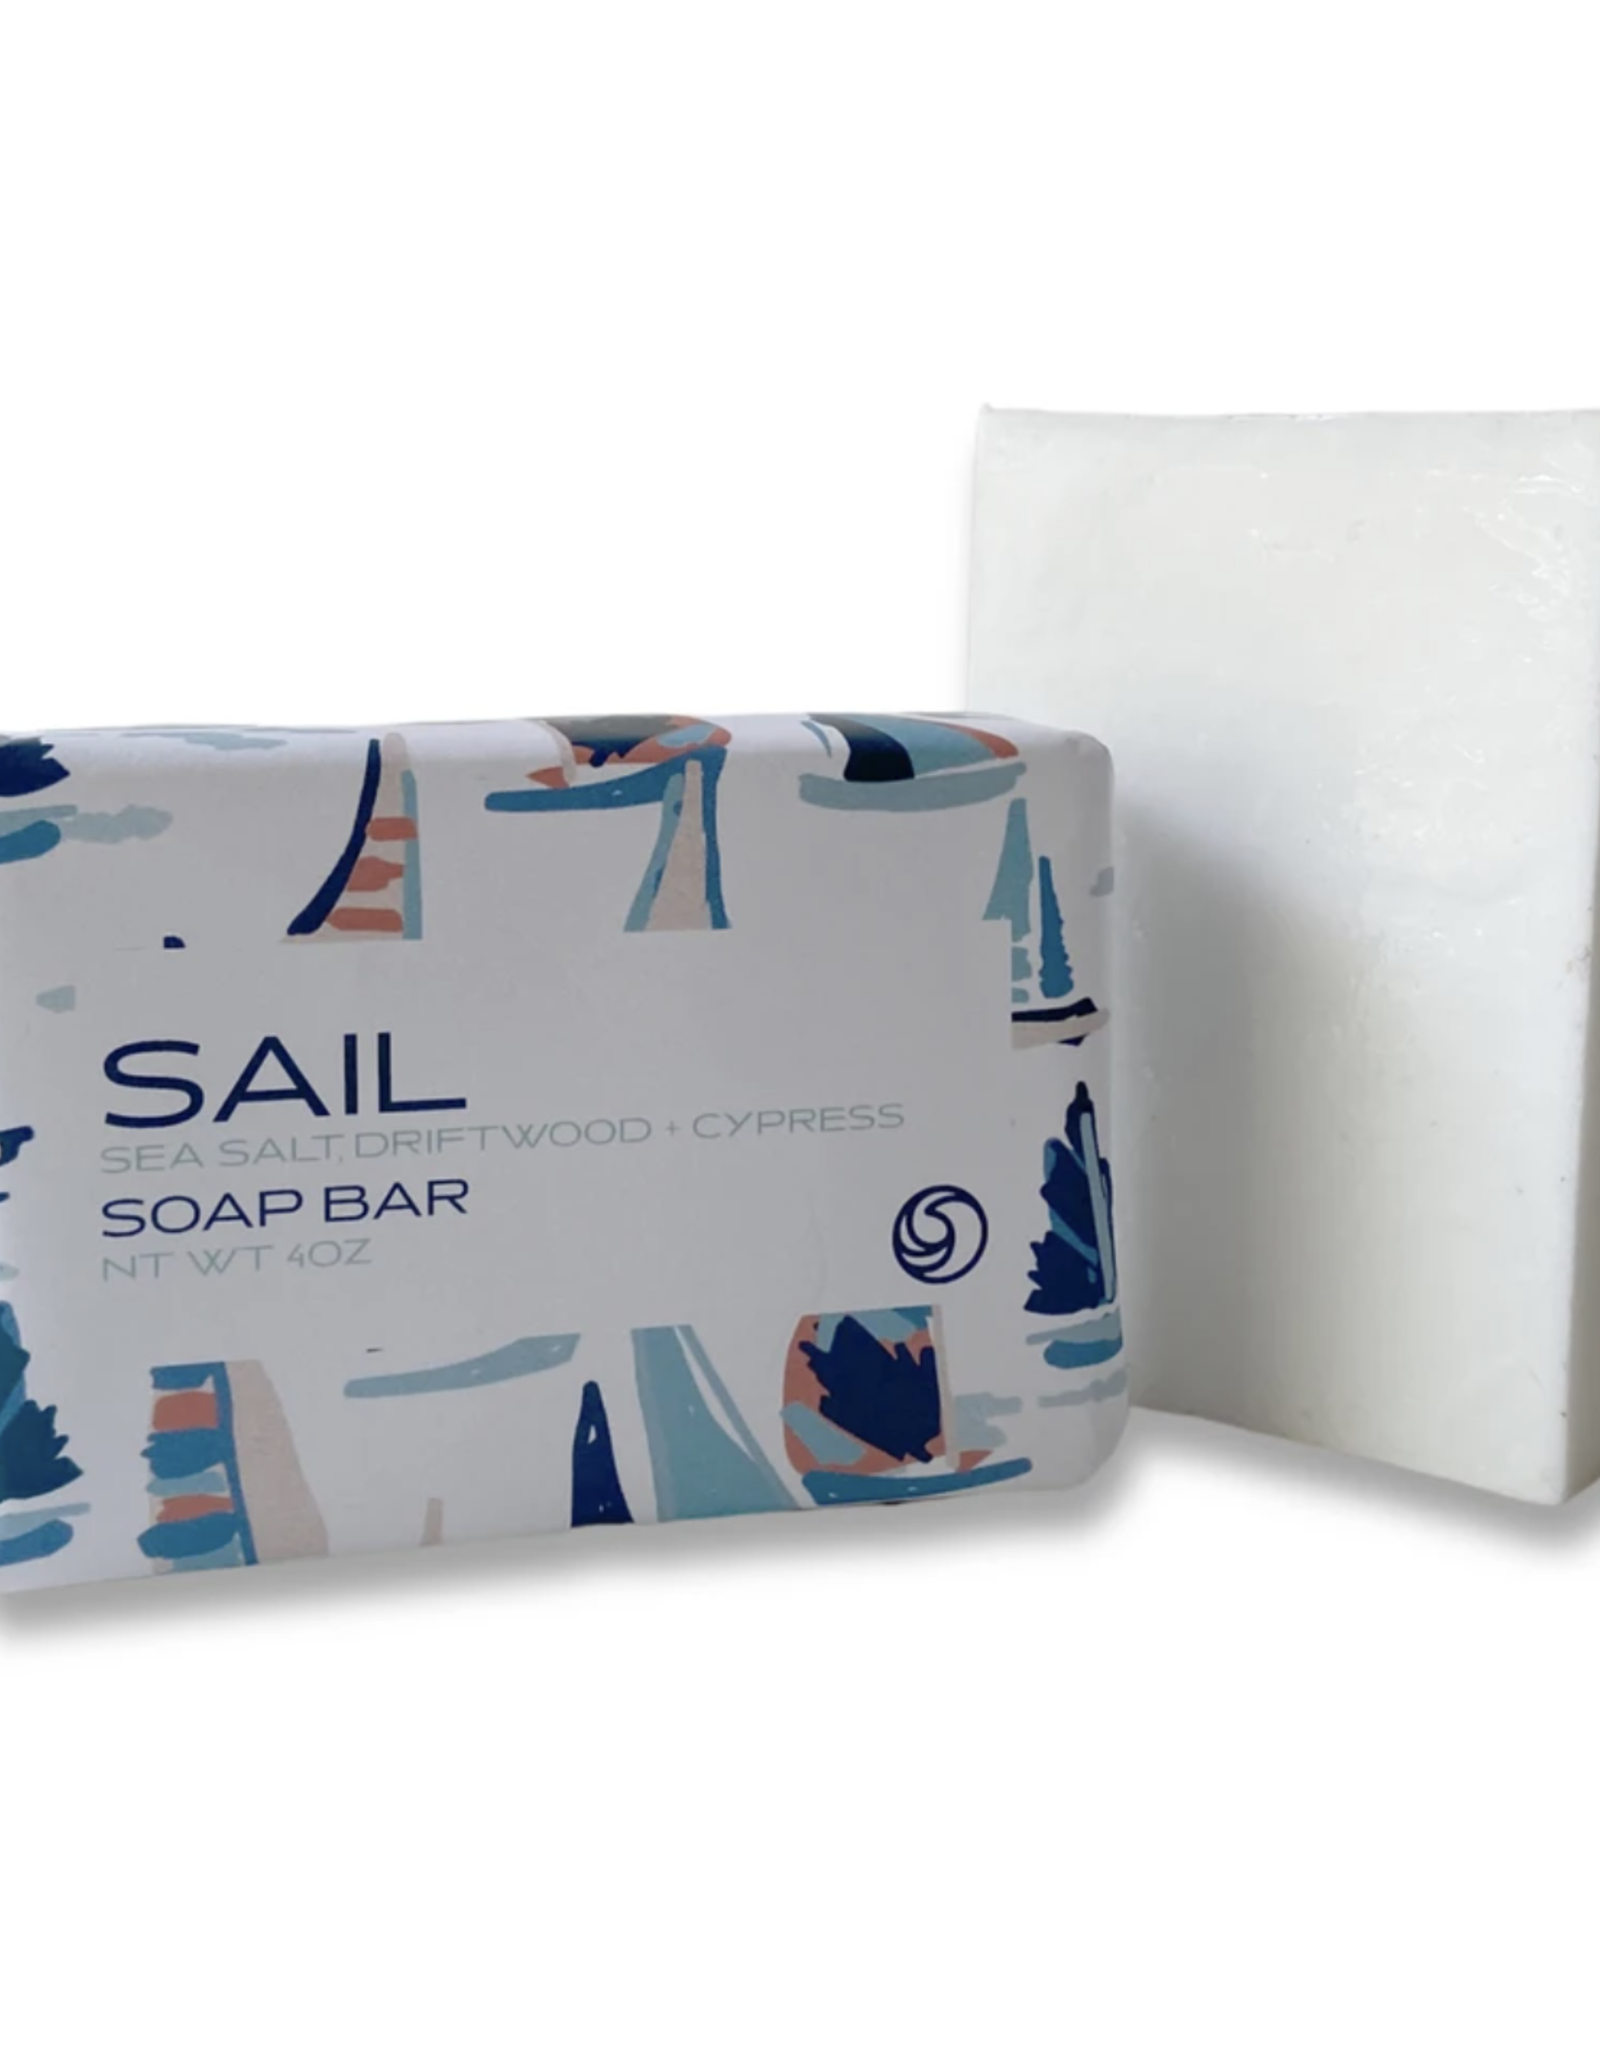 Sail Soap Bar